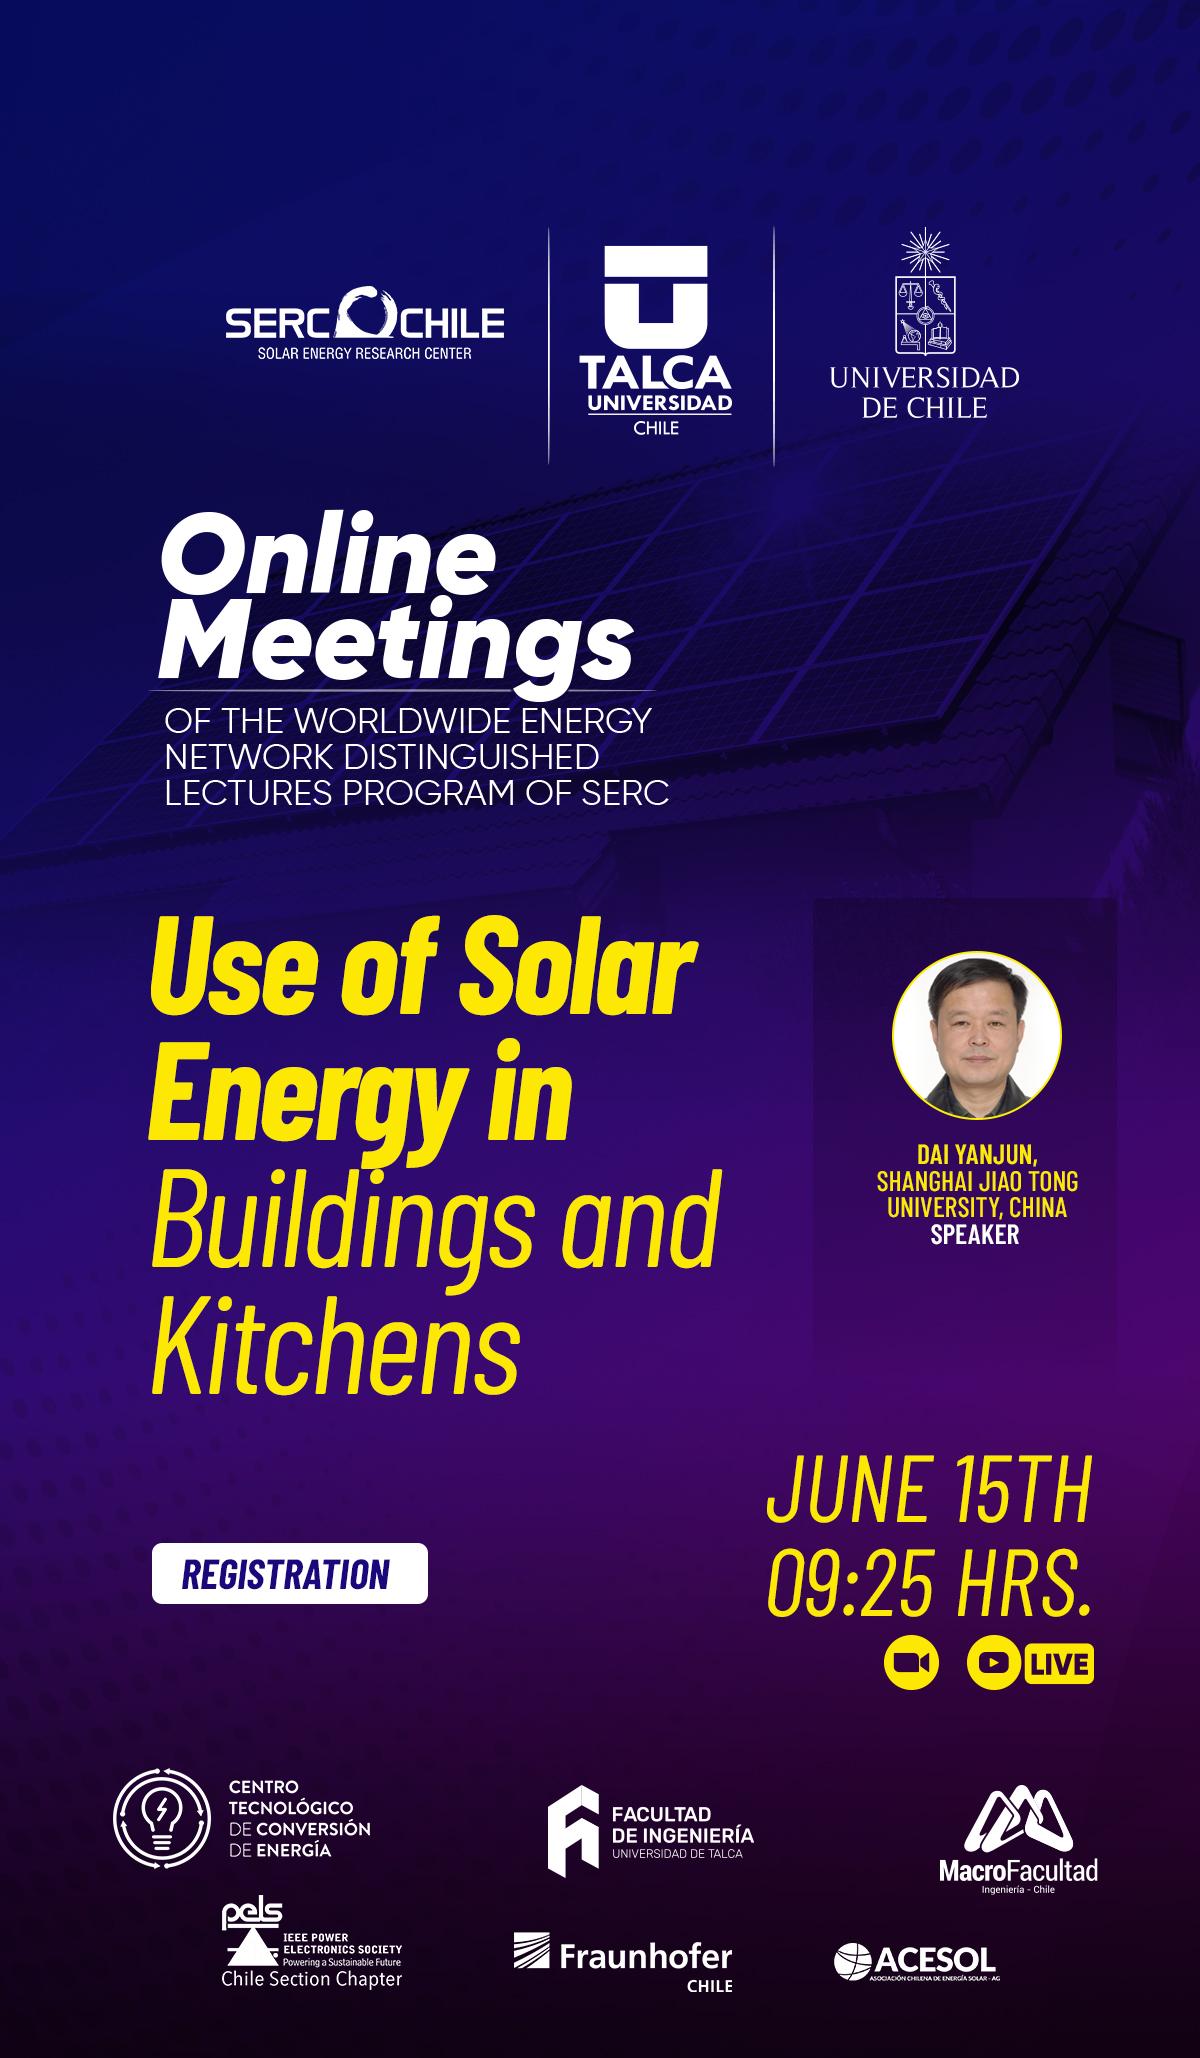 Online Meetings, Use of Solar Energy in Buildings and Kitchens